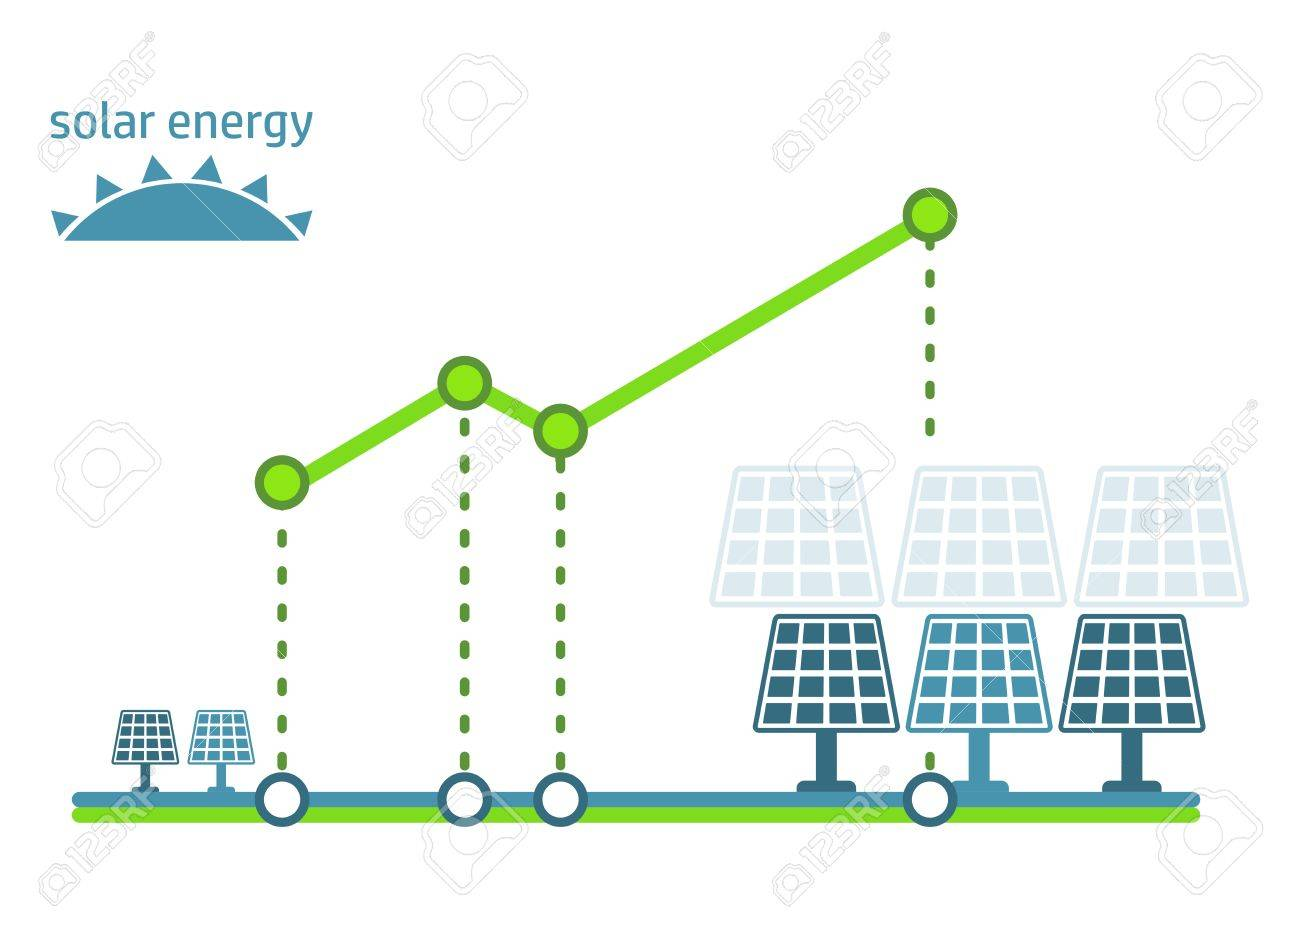 eco diagram  ecology , green with solar energy, wind energy and water energy  icons